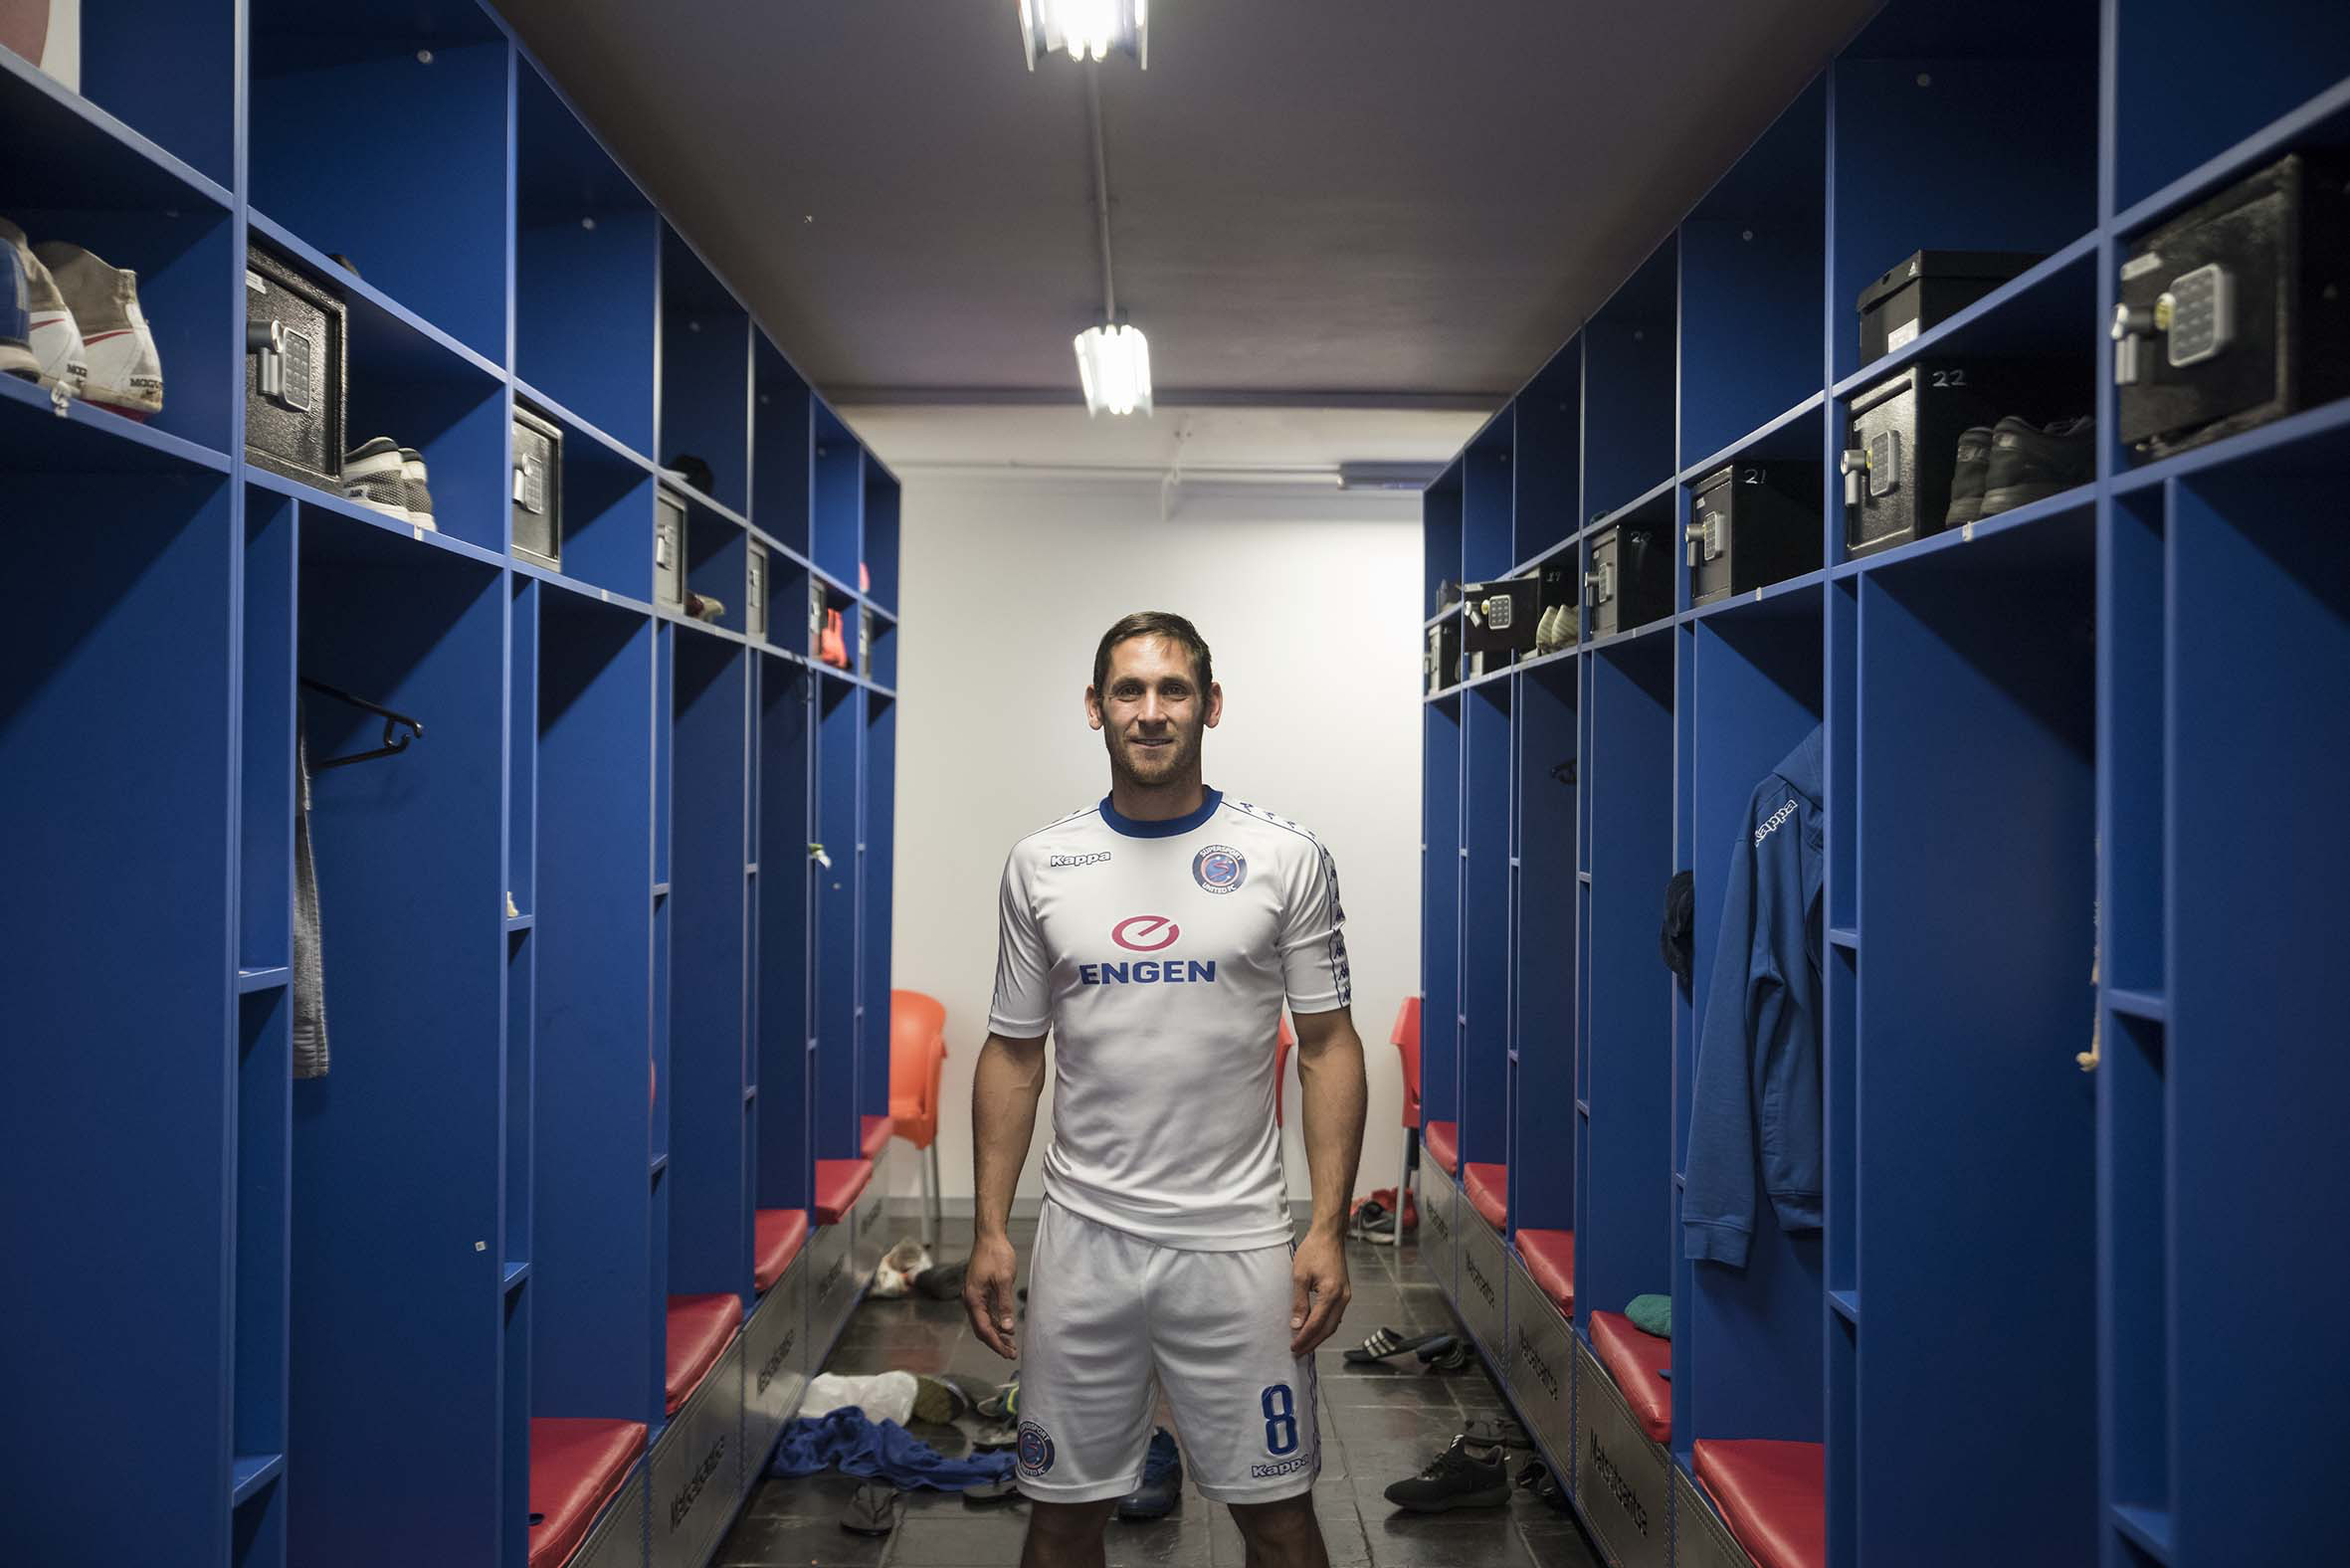 11 September 2018: Bafana Bafana midfielder and Supersport United captain Dean Furman at the Supersport United changing rooms at their training facility in Megawatt Park in Woodmead.